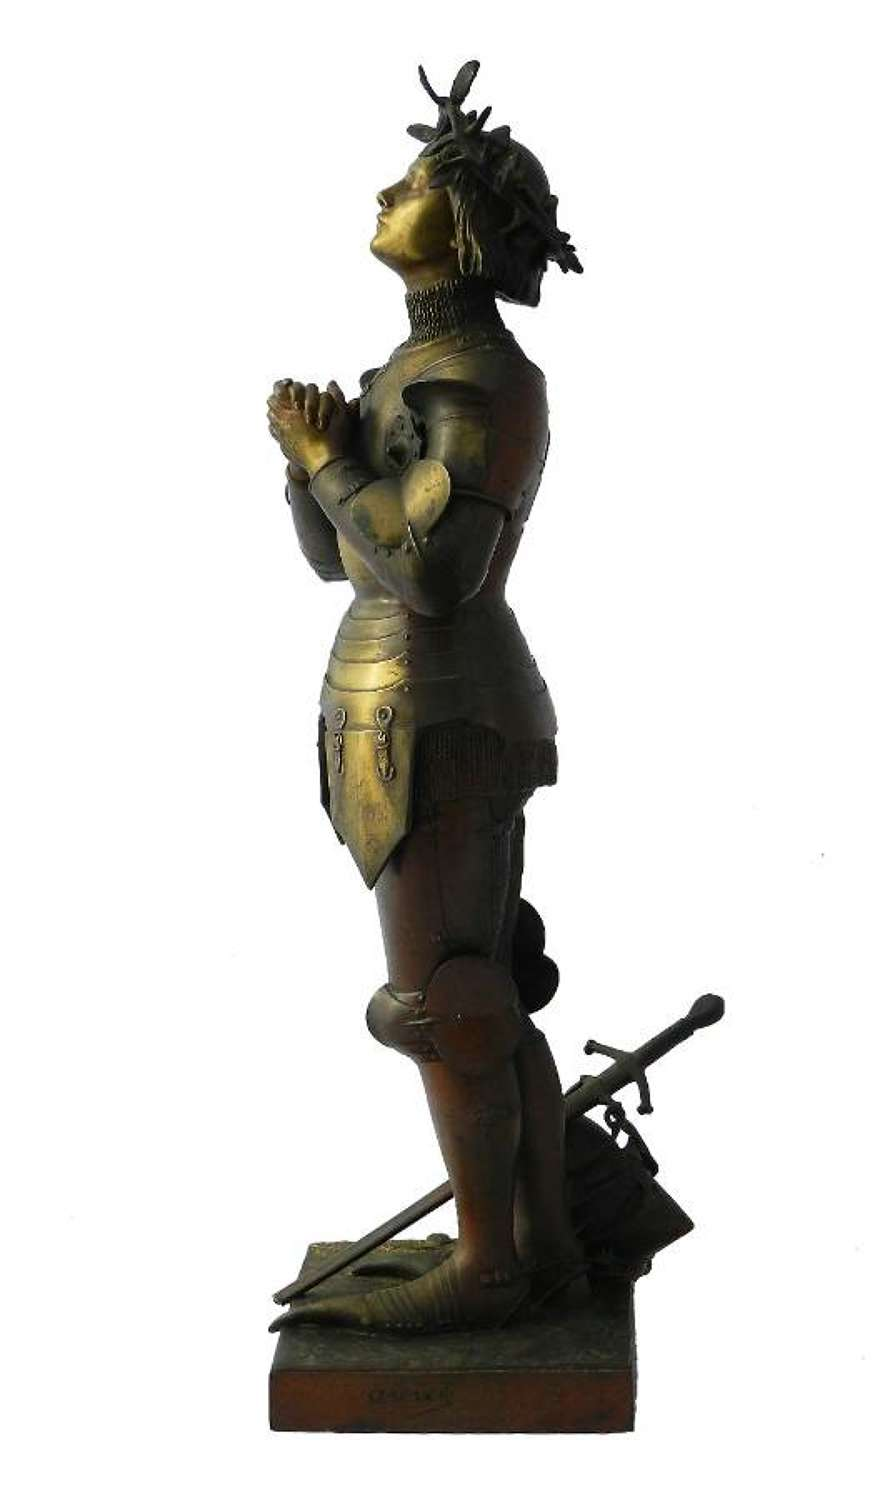 French Bronze Statue Joan of Arc by Antonin Marcie 19th century